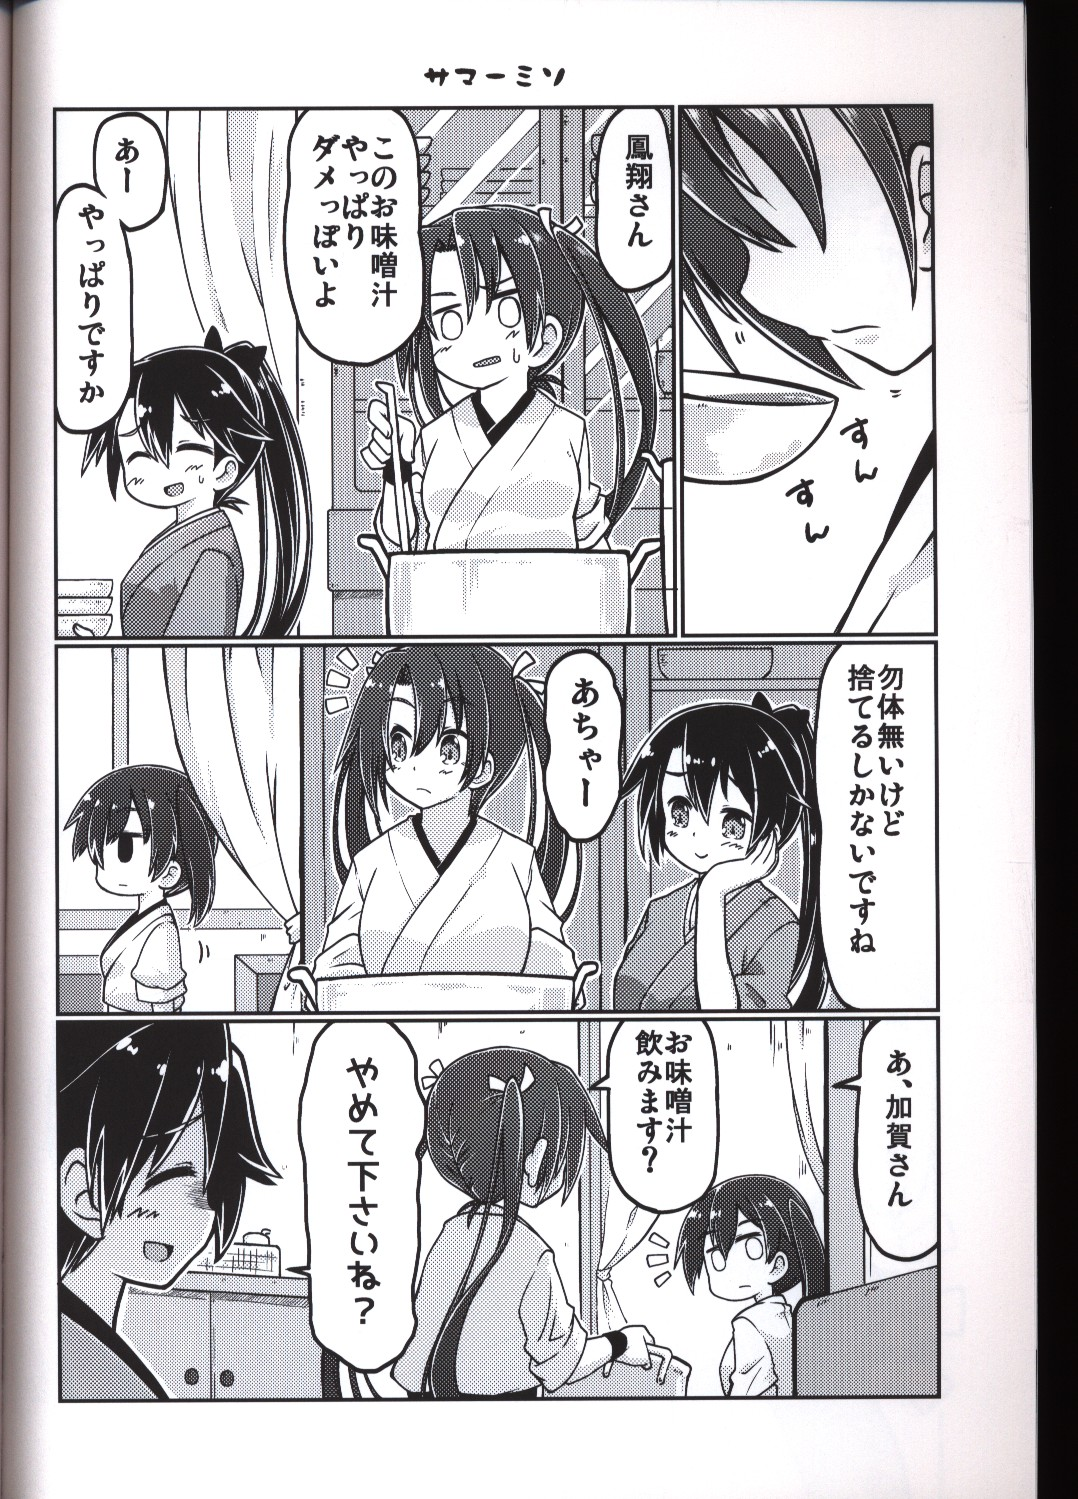 Doujinshi - Kantai Collection / Hiryu & Souryu (夏休む。) / しおゆで